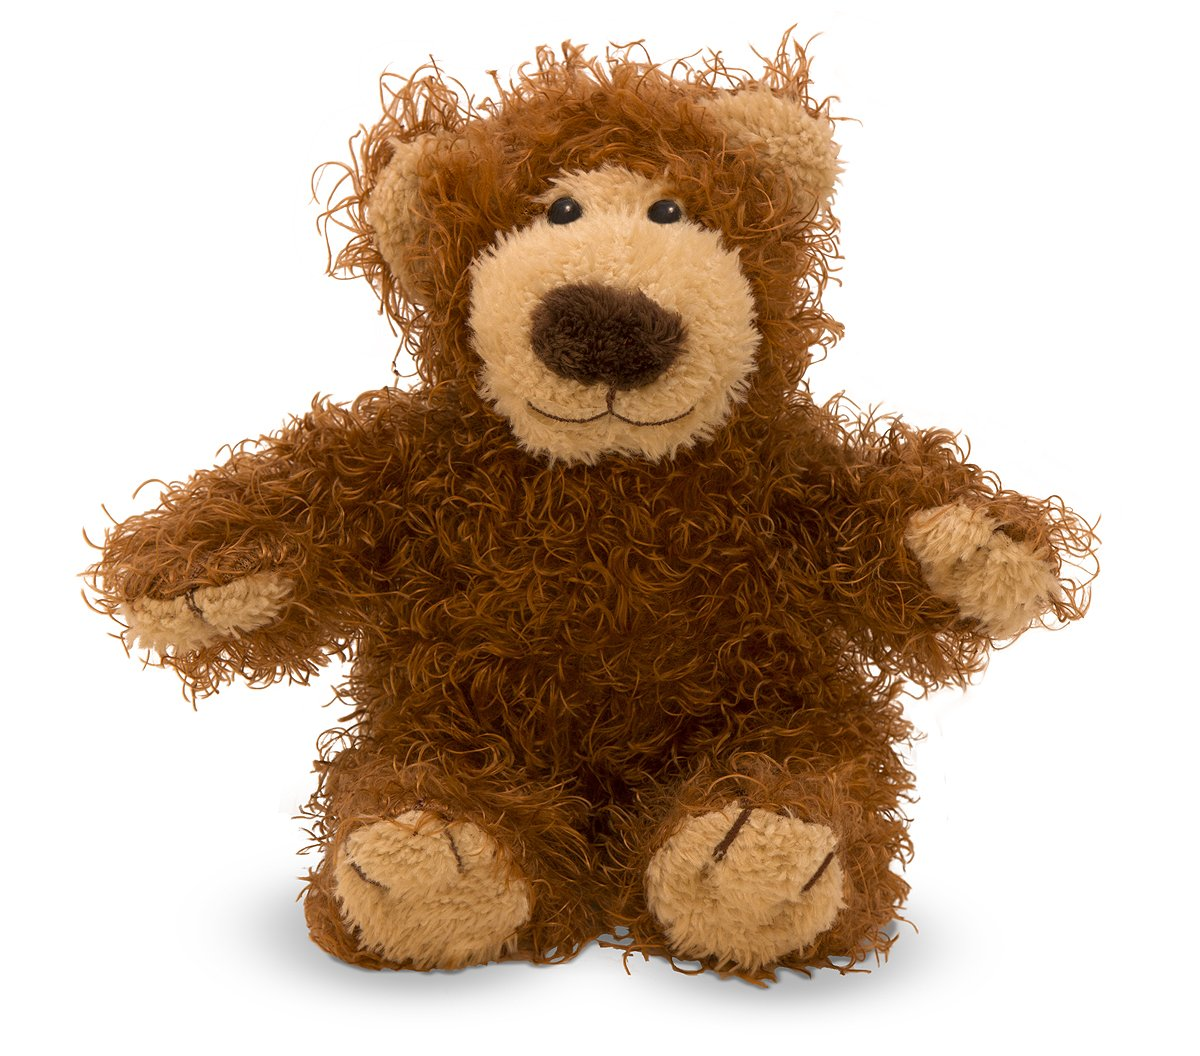 Melissa & Doug Baby Roscoe Bear - Teddy Bear Stuffed Animal Plush Toy (Great Gift for Girls and Boys - Best for Babies and Toddlers, All Ages)